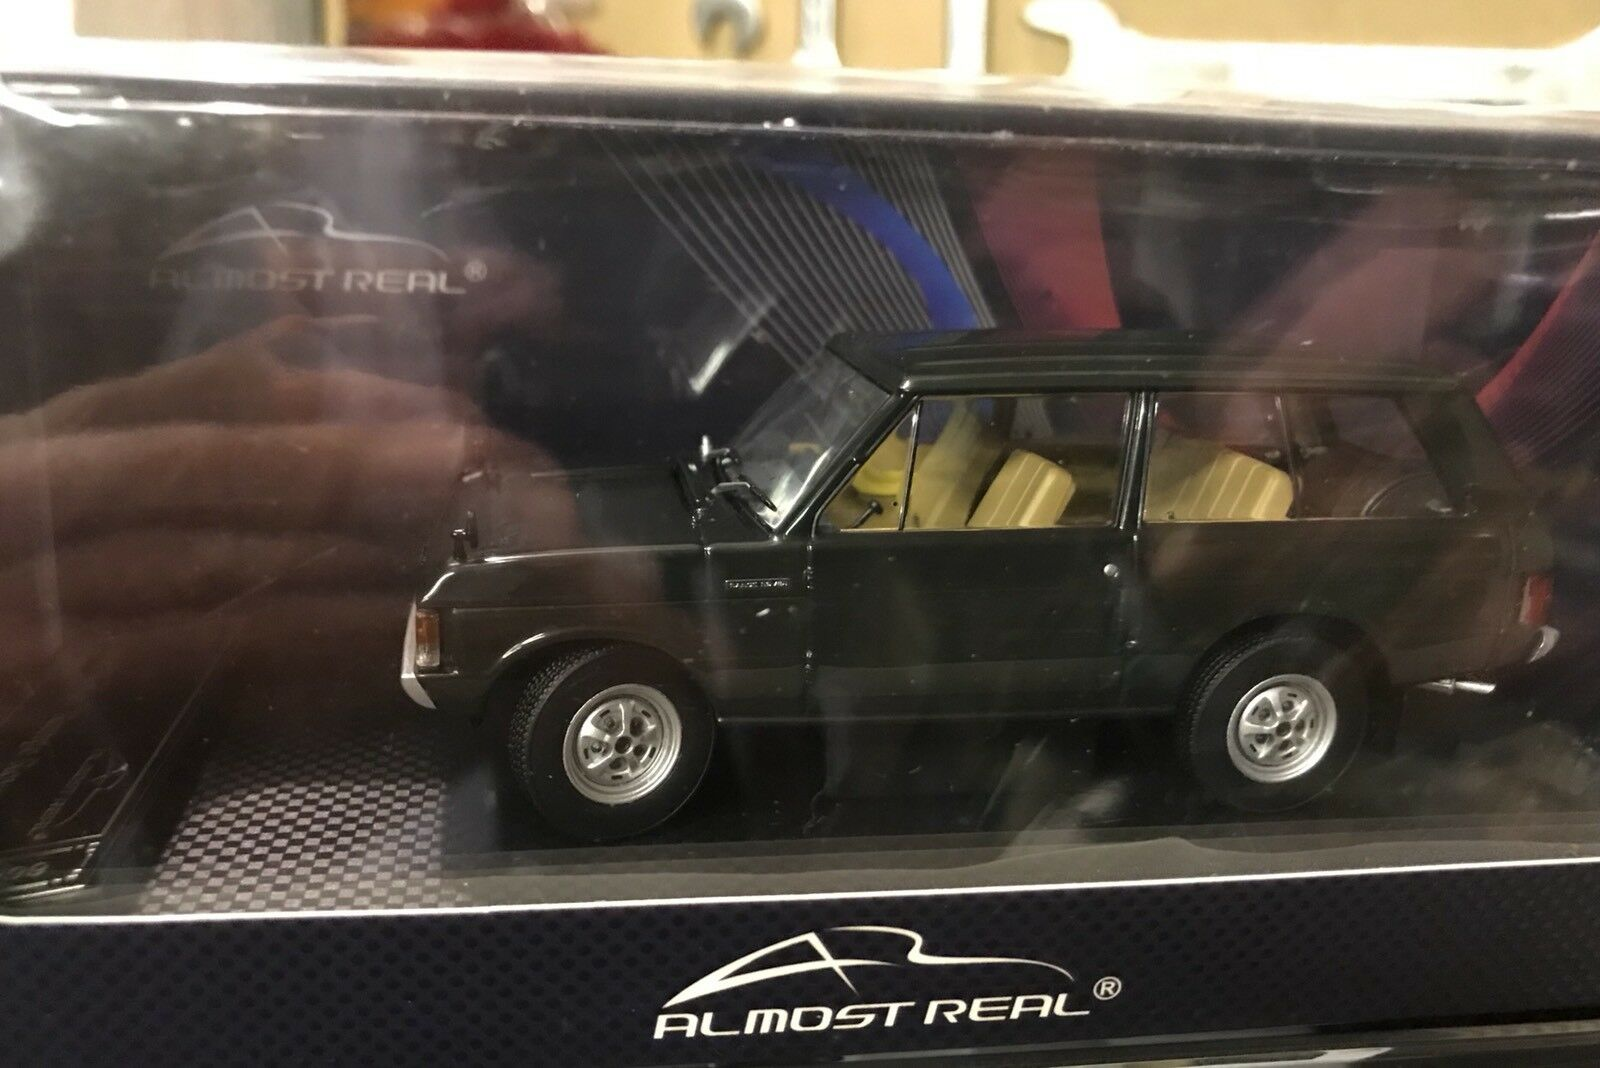 Almost Real Dark verde Range Rover  limited edition model